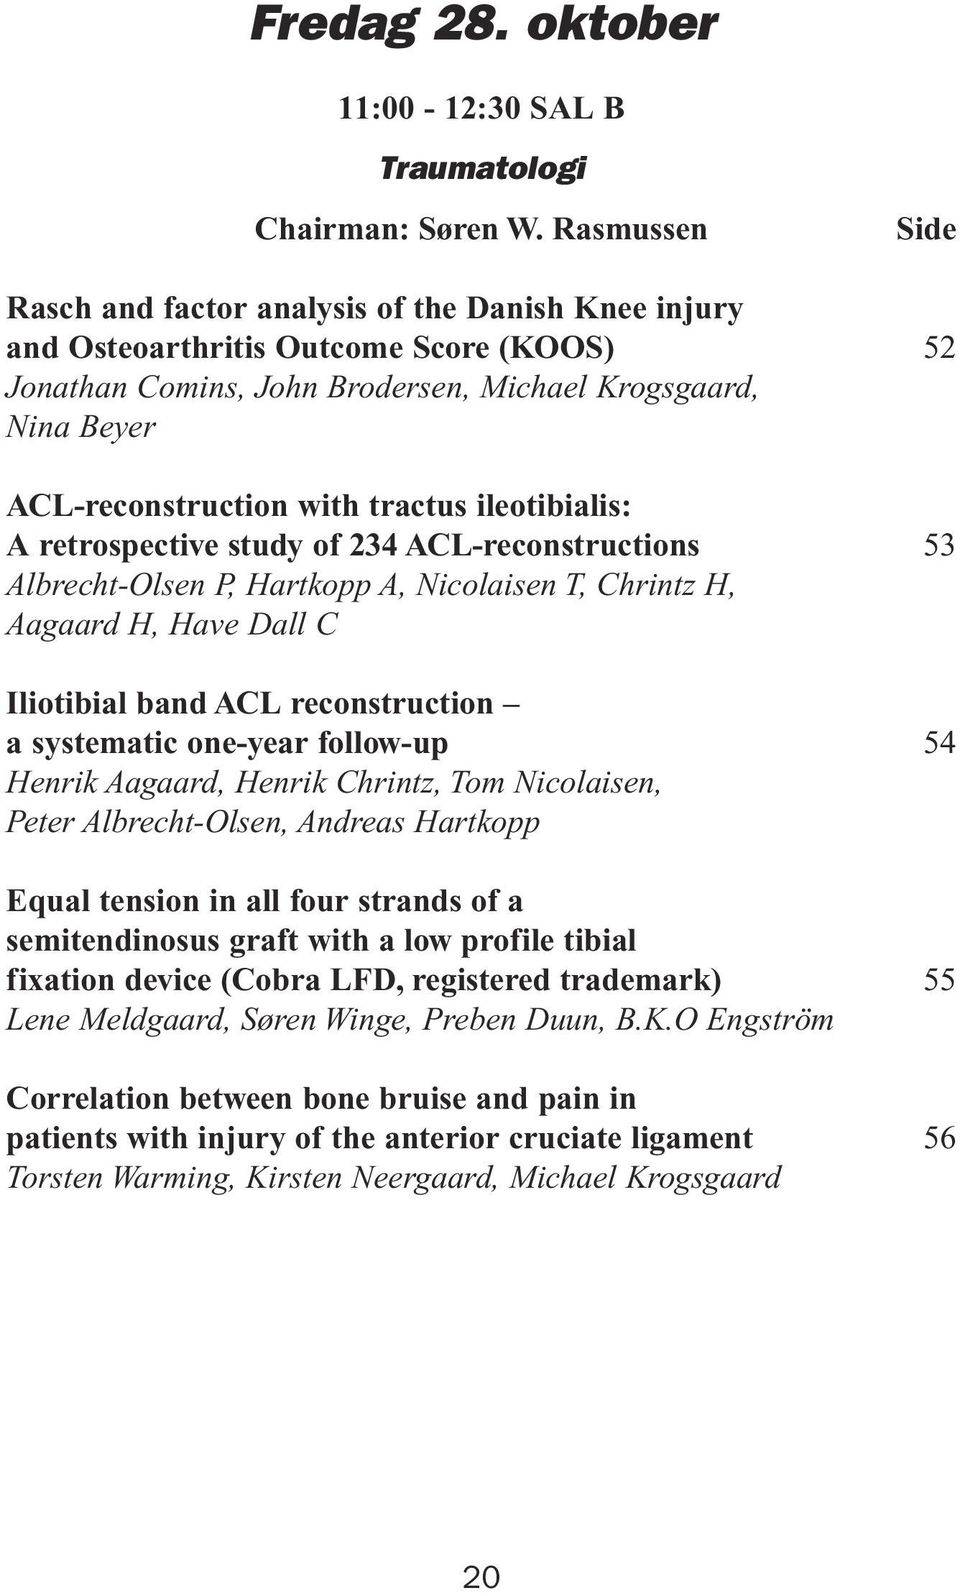 ileotibialis: A retrospective study of 234 ACL-reconstructions Albrecht-Olsen P, Hartkopp A, Nicolaisen T, Chrintz H, Aagaard H, Have Dall C Iliotibial band ACL reconstruction a systematic one-year